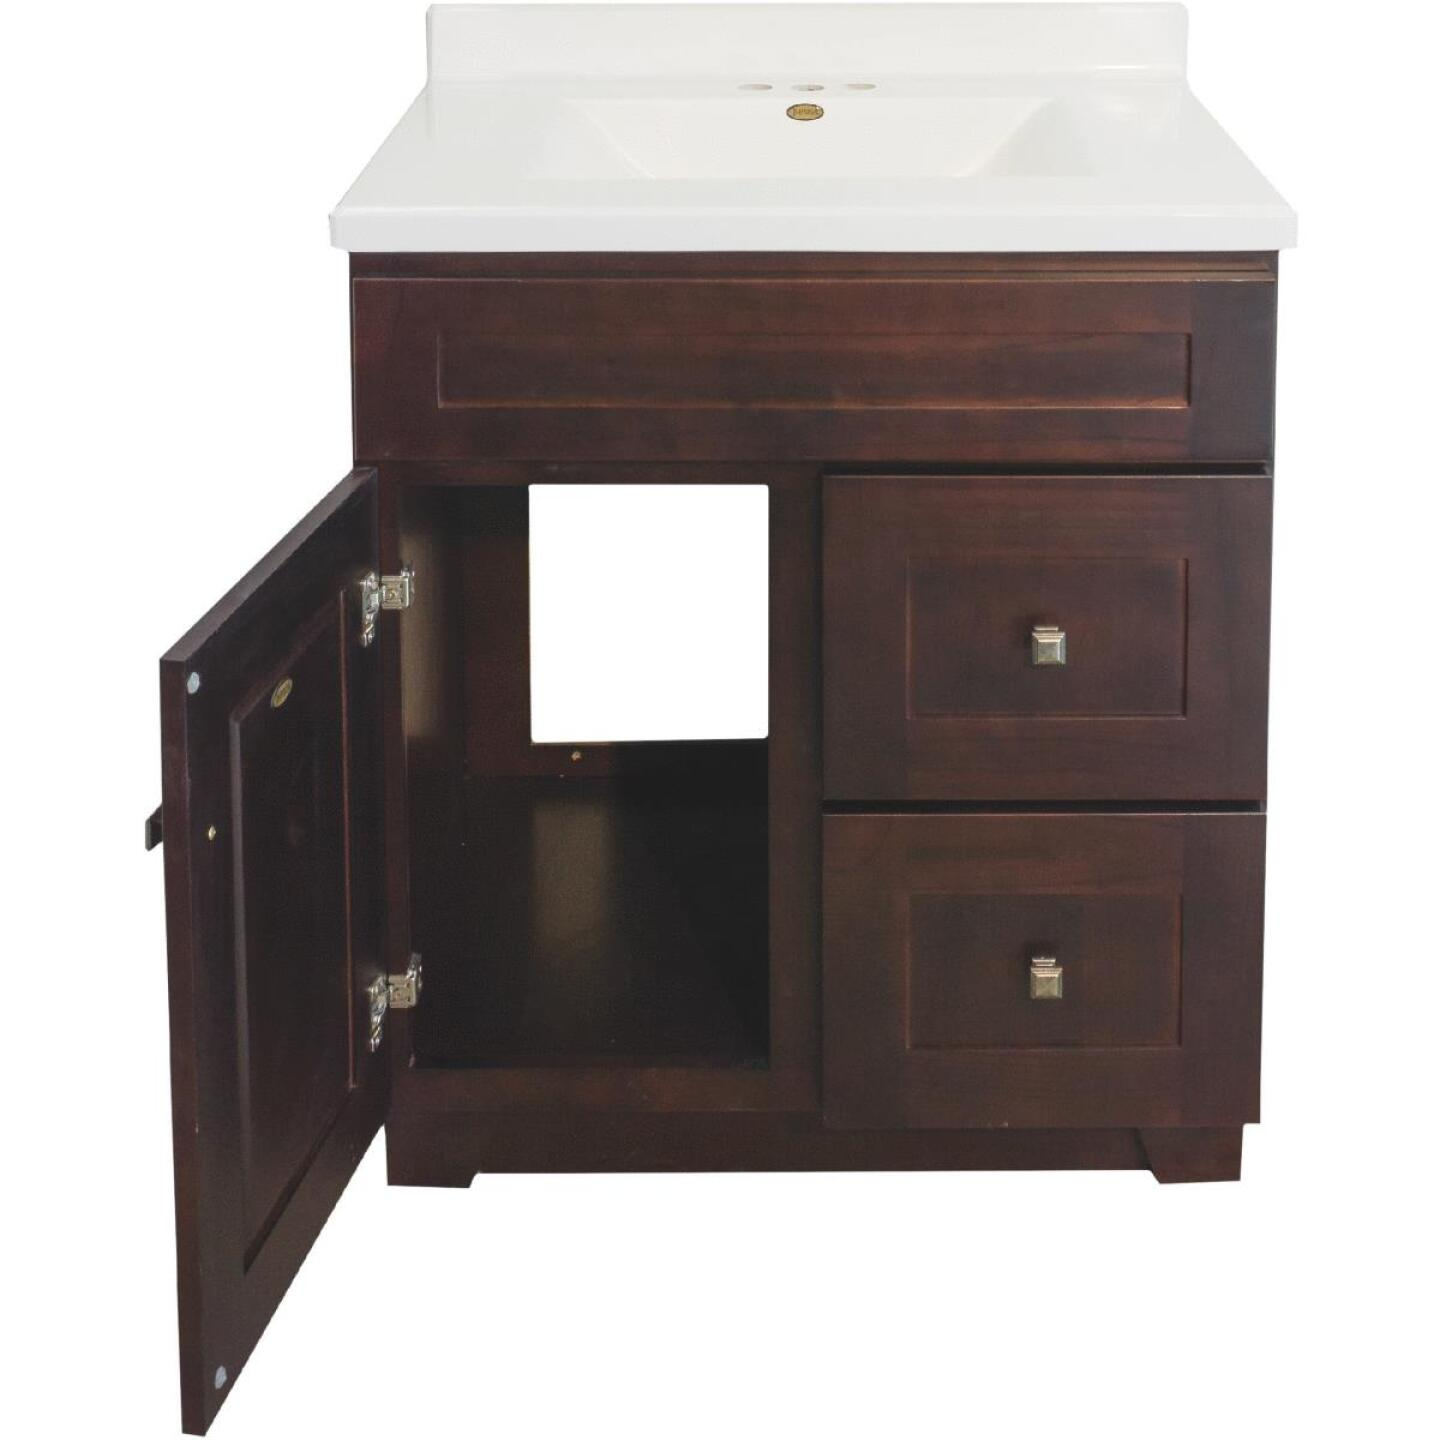 CraftMark CherryVale Shaker Cherry 30 In. W x 34 In. H x 21 In. D Vanity Base, 1 Door/2 Drawer Image 4